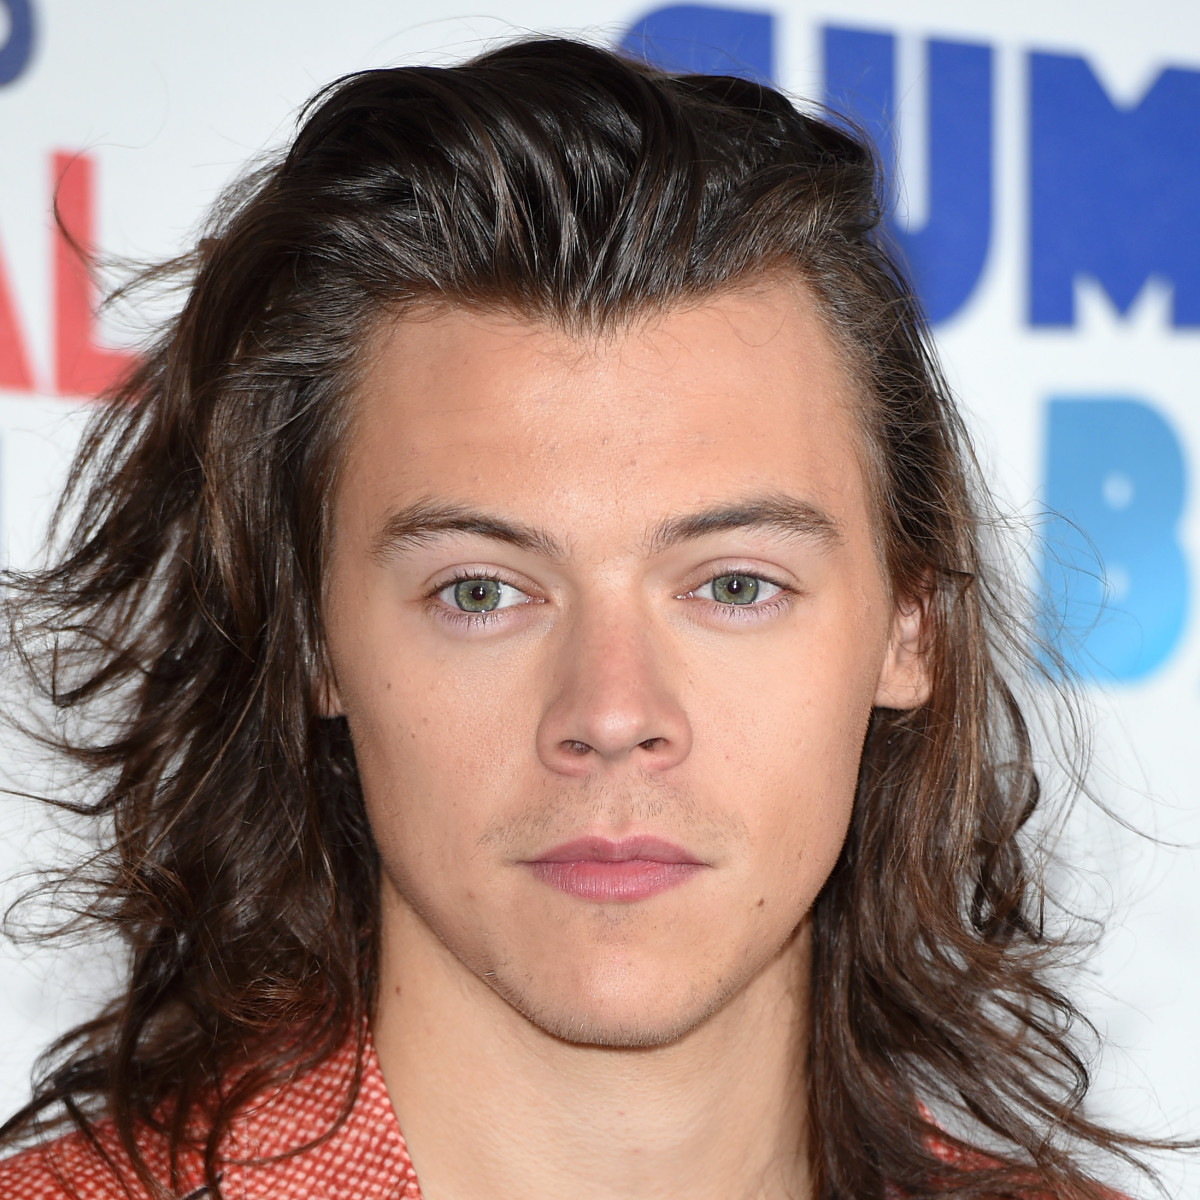 Harry Styles Chops Off His Long Hair And People Are Freaking Out Check Out The Mixed Reactions Celebrity Insider